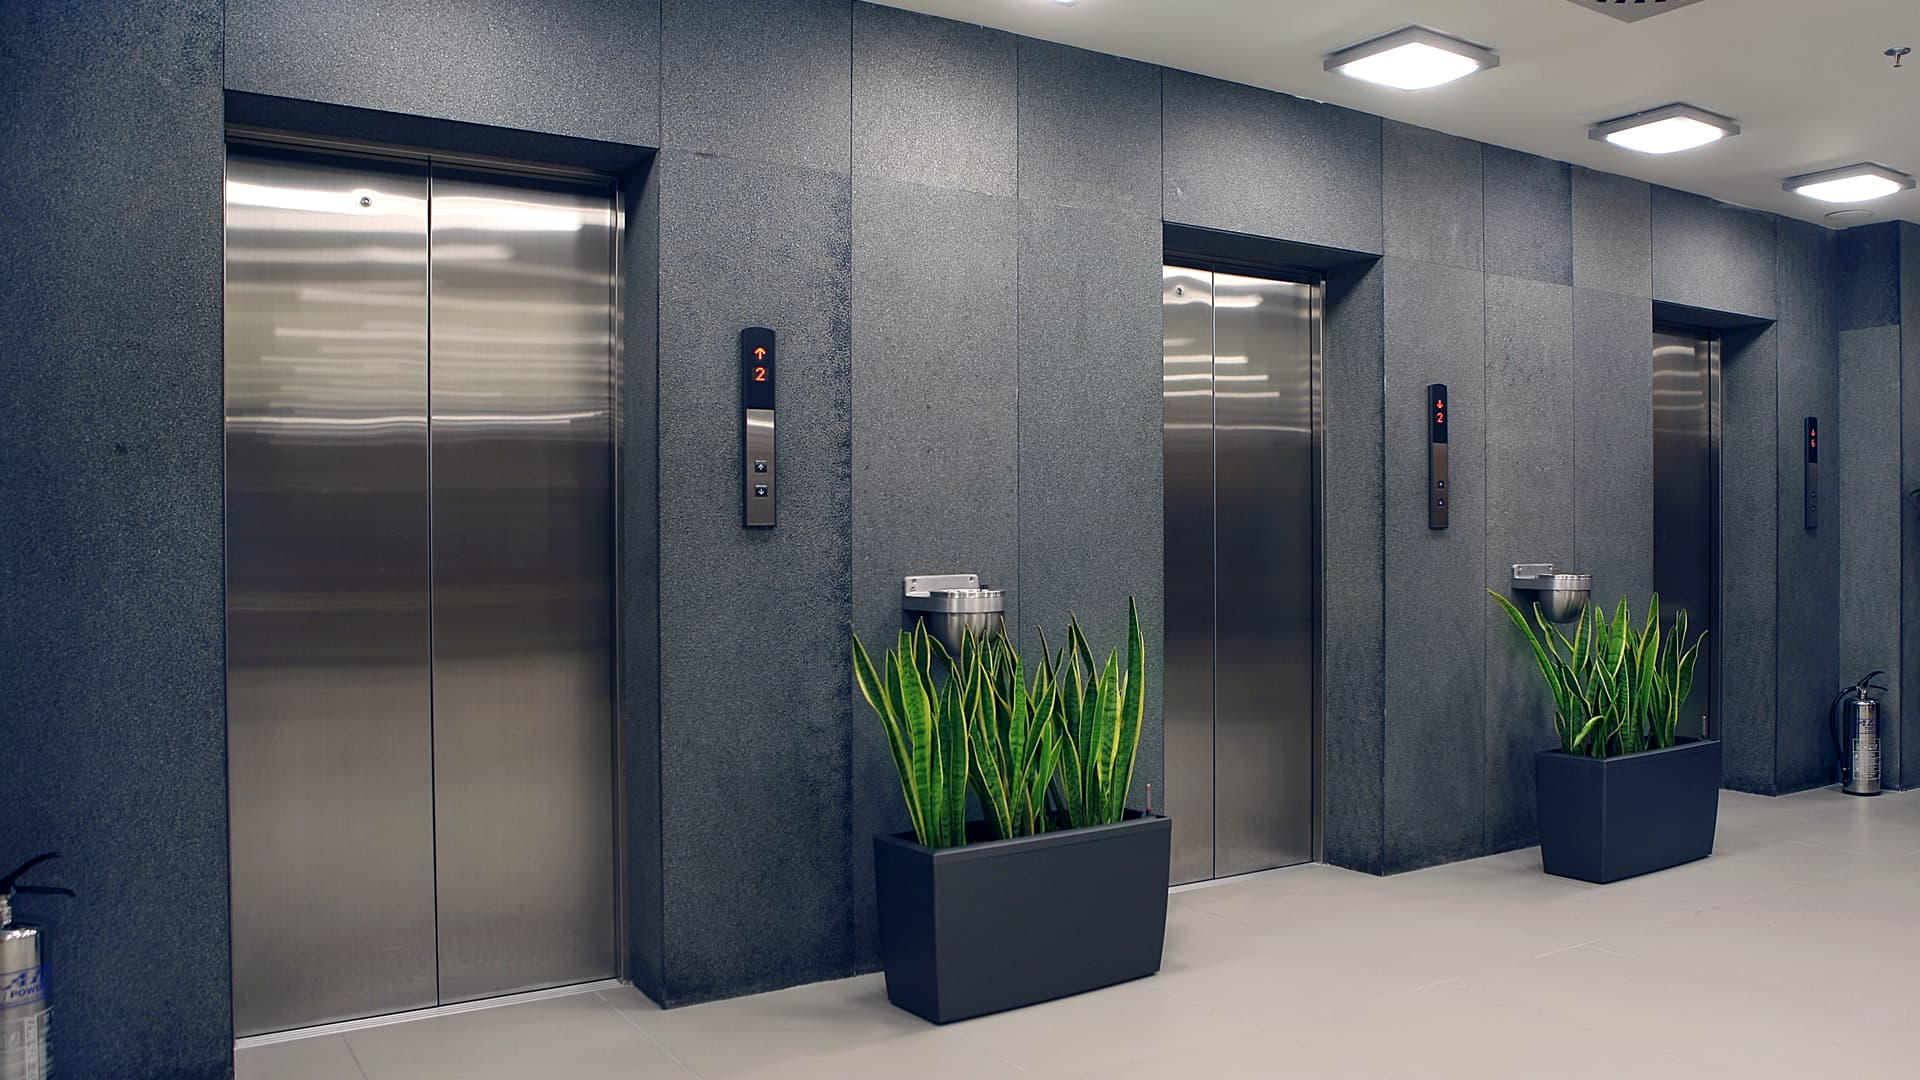 Lift Installation Specialists London South East